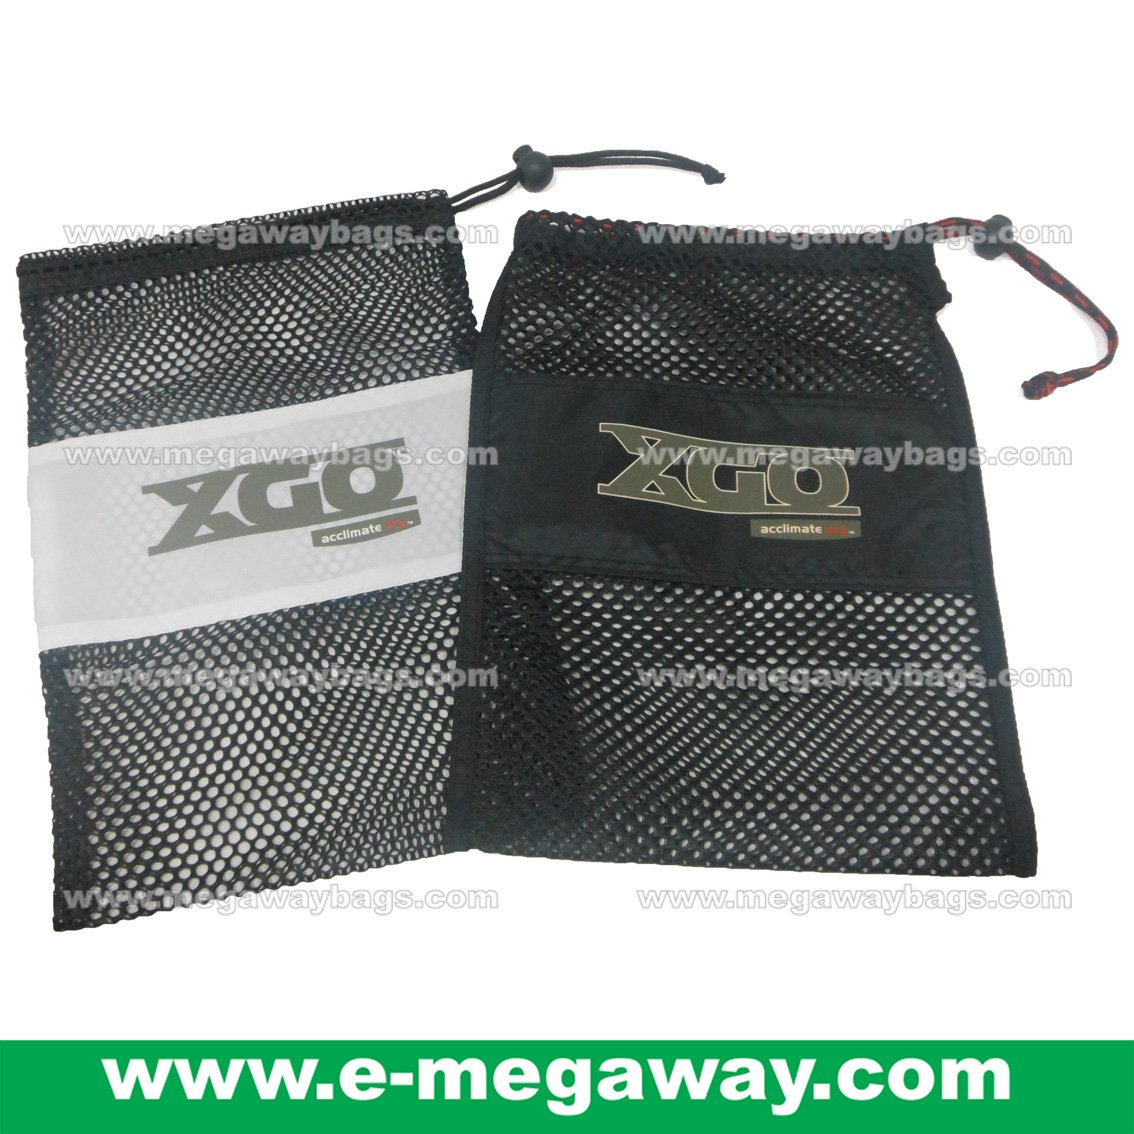 XGO Mesh Bags Draw Sting Pouch Jackets Garment travel Packaging Pack MegawayBags #CC-0939B